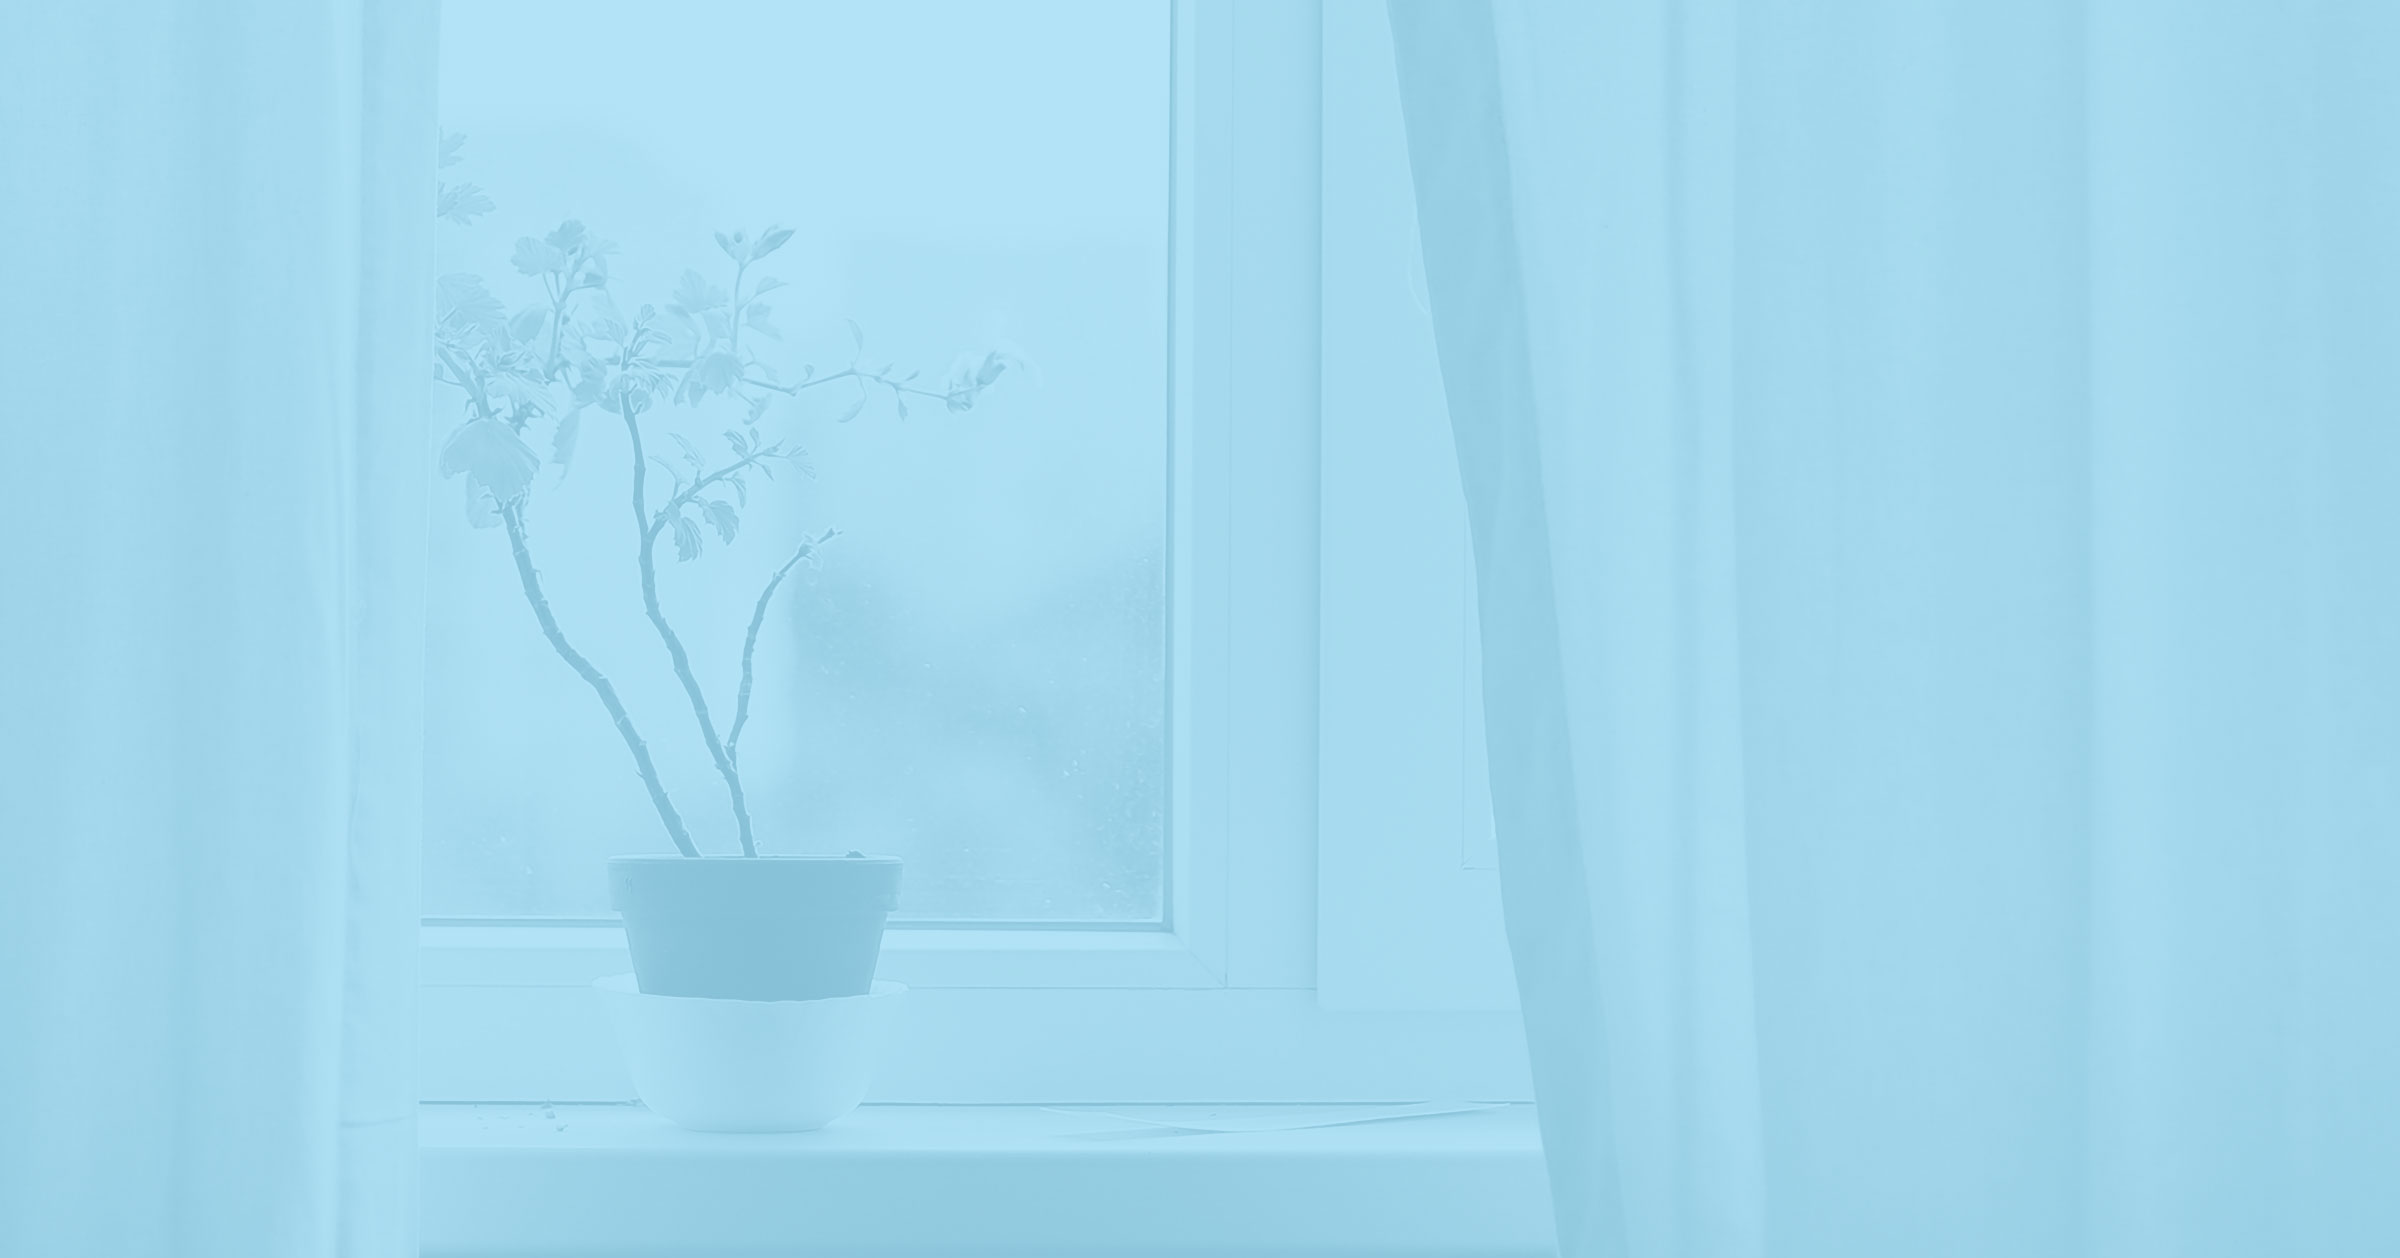 divorce-and-life-insurance-pensive-rainy-window-cover-img-NEW